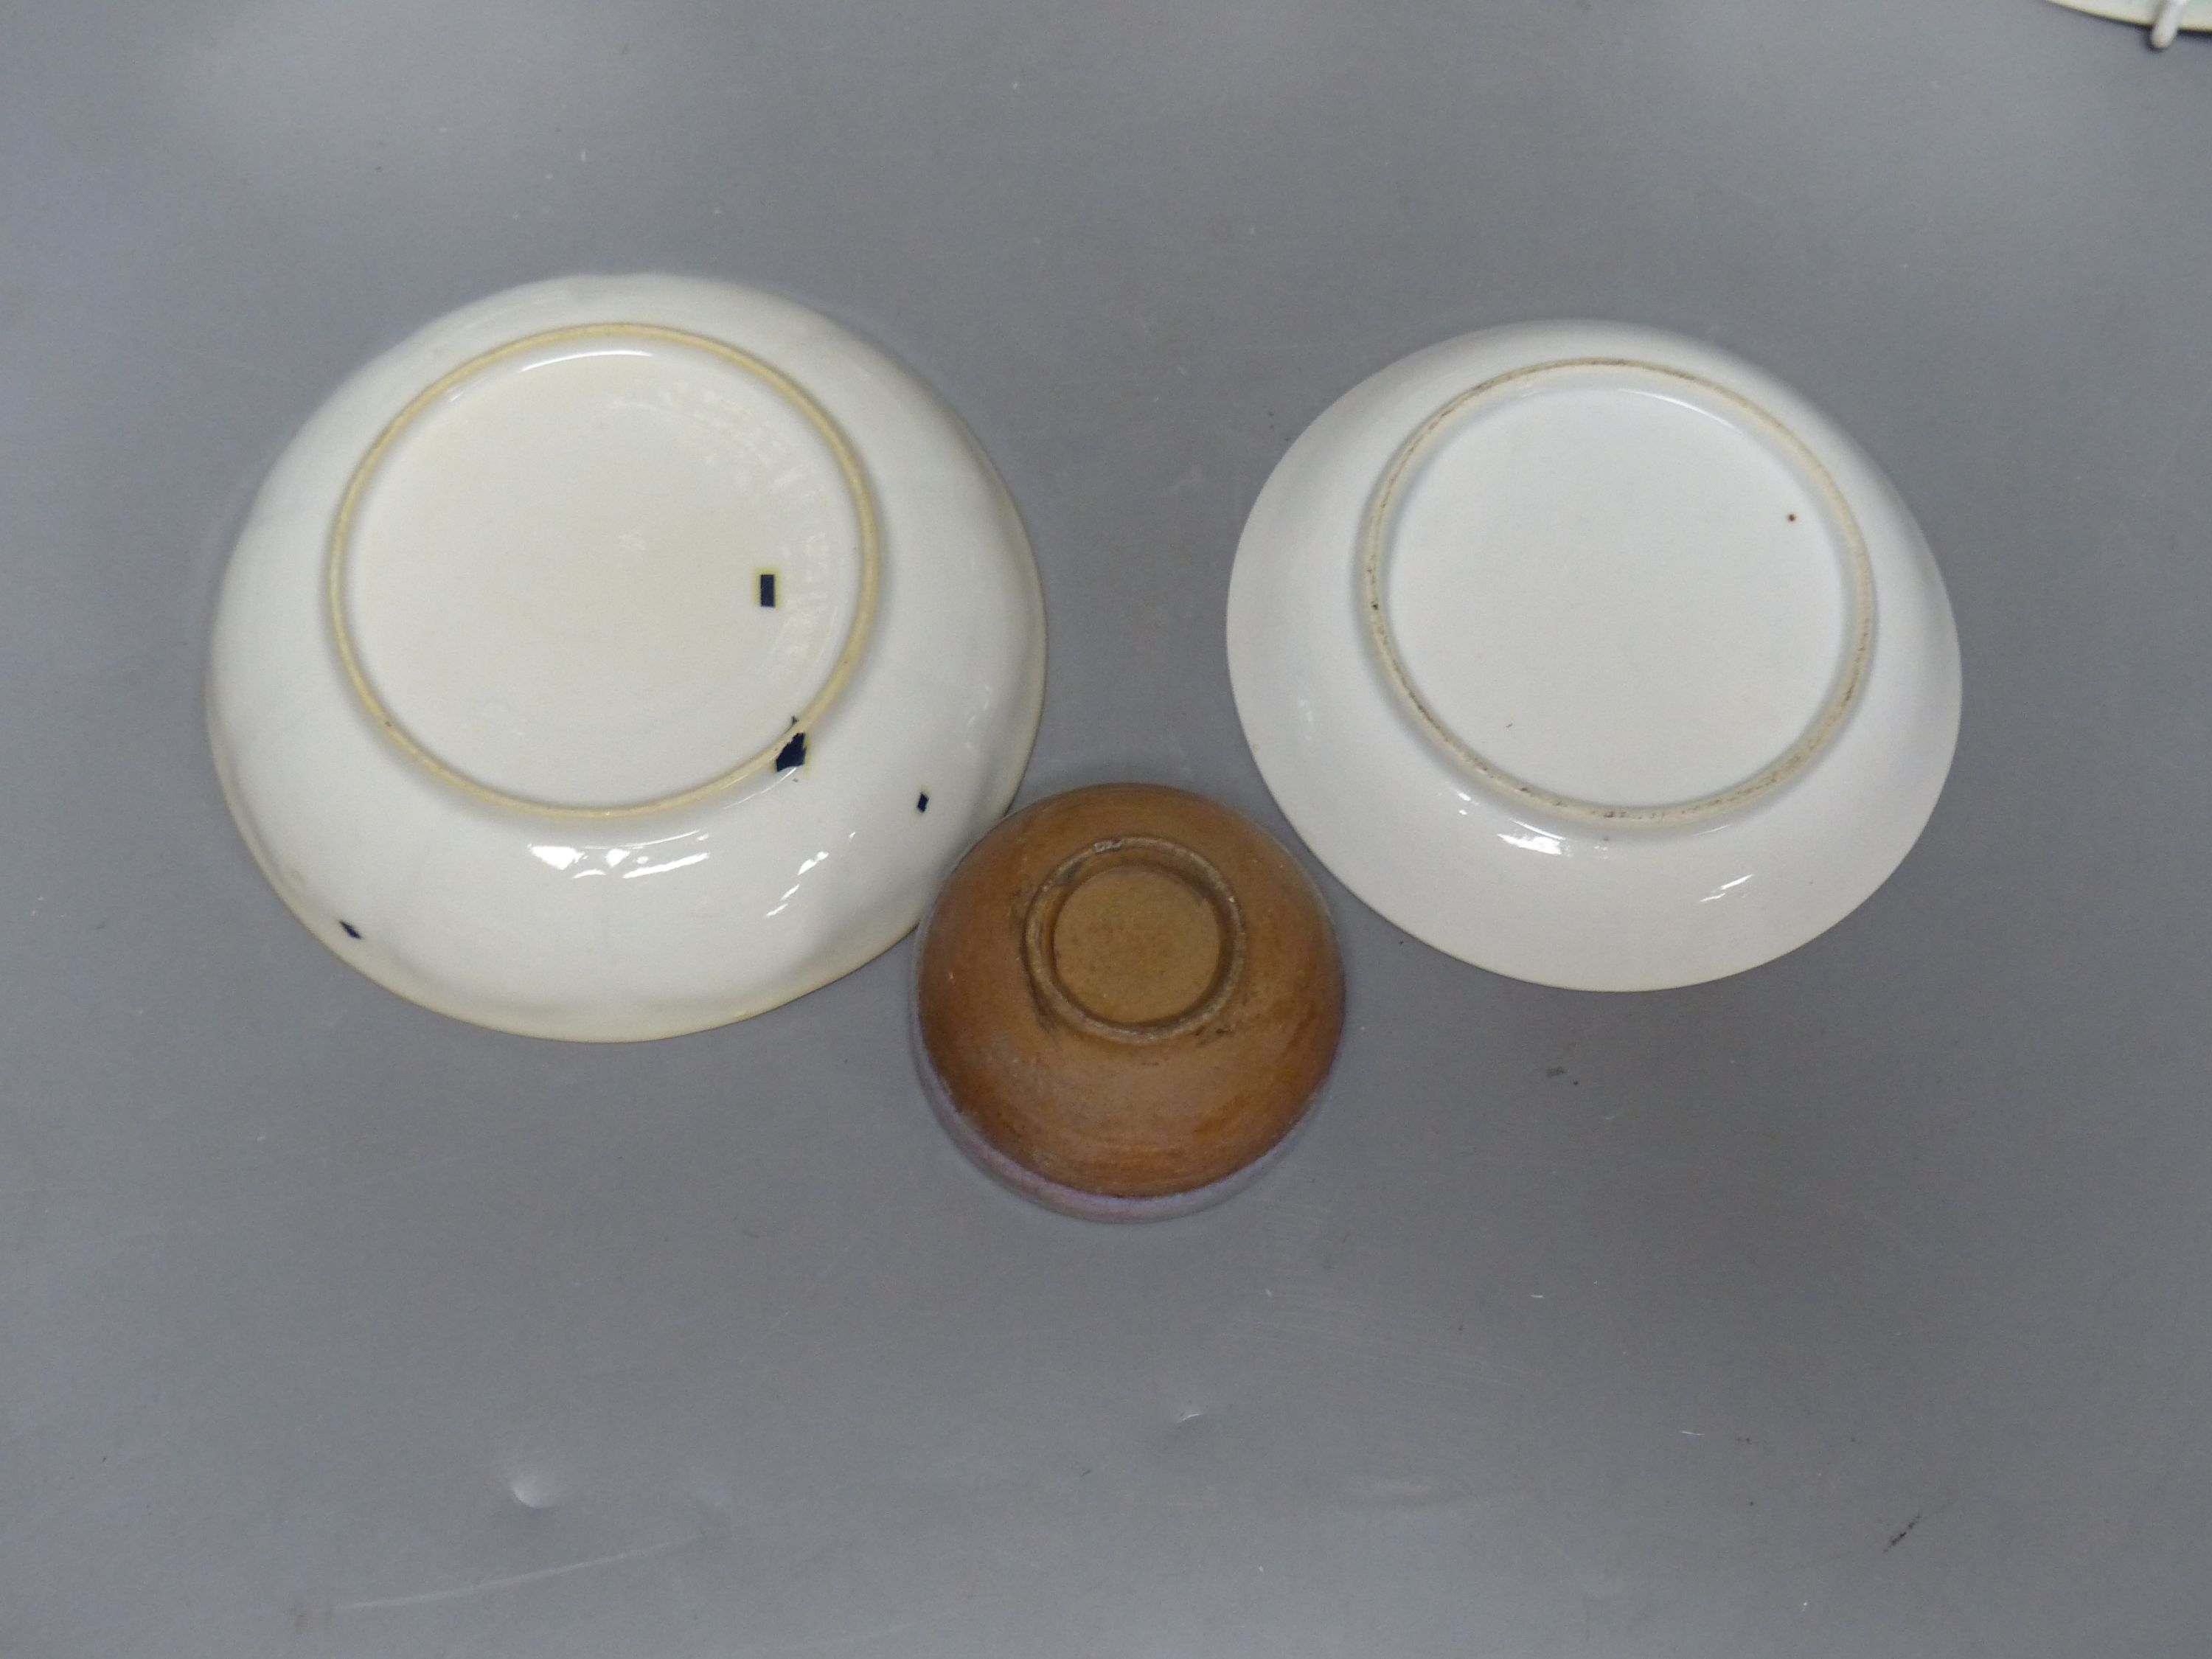 Chinese Imari pattern dishes, two others, a teapot, height 15cm, and a pottery bowl - Bild 2 aus 5